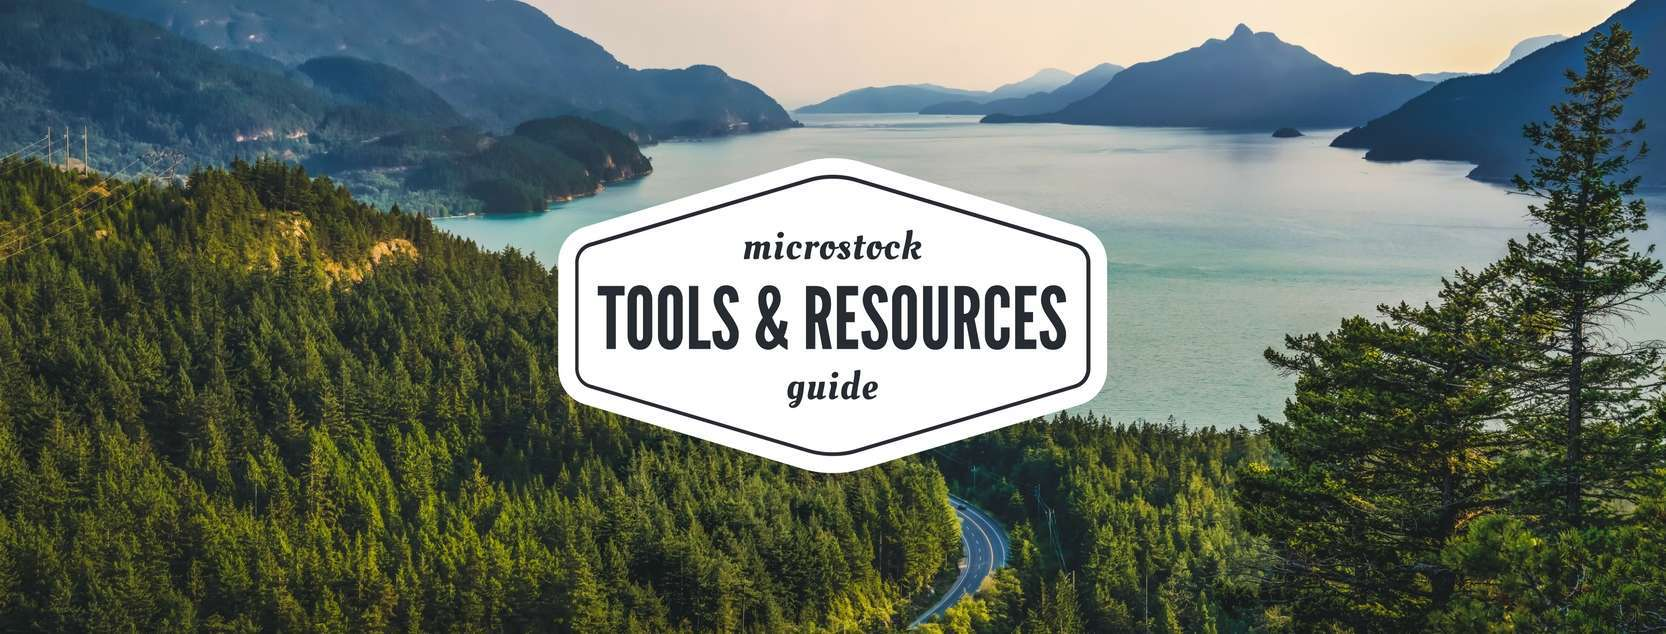 Microstock Tools & Resources Guide